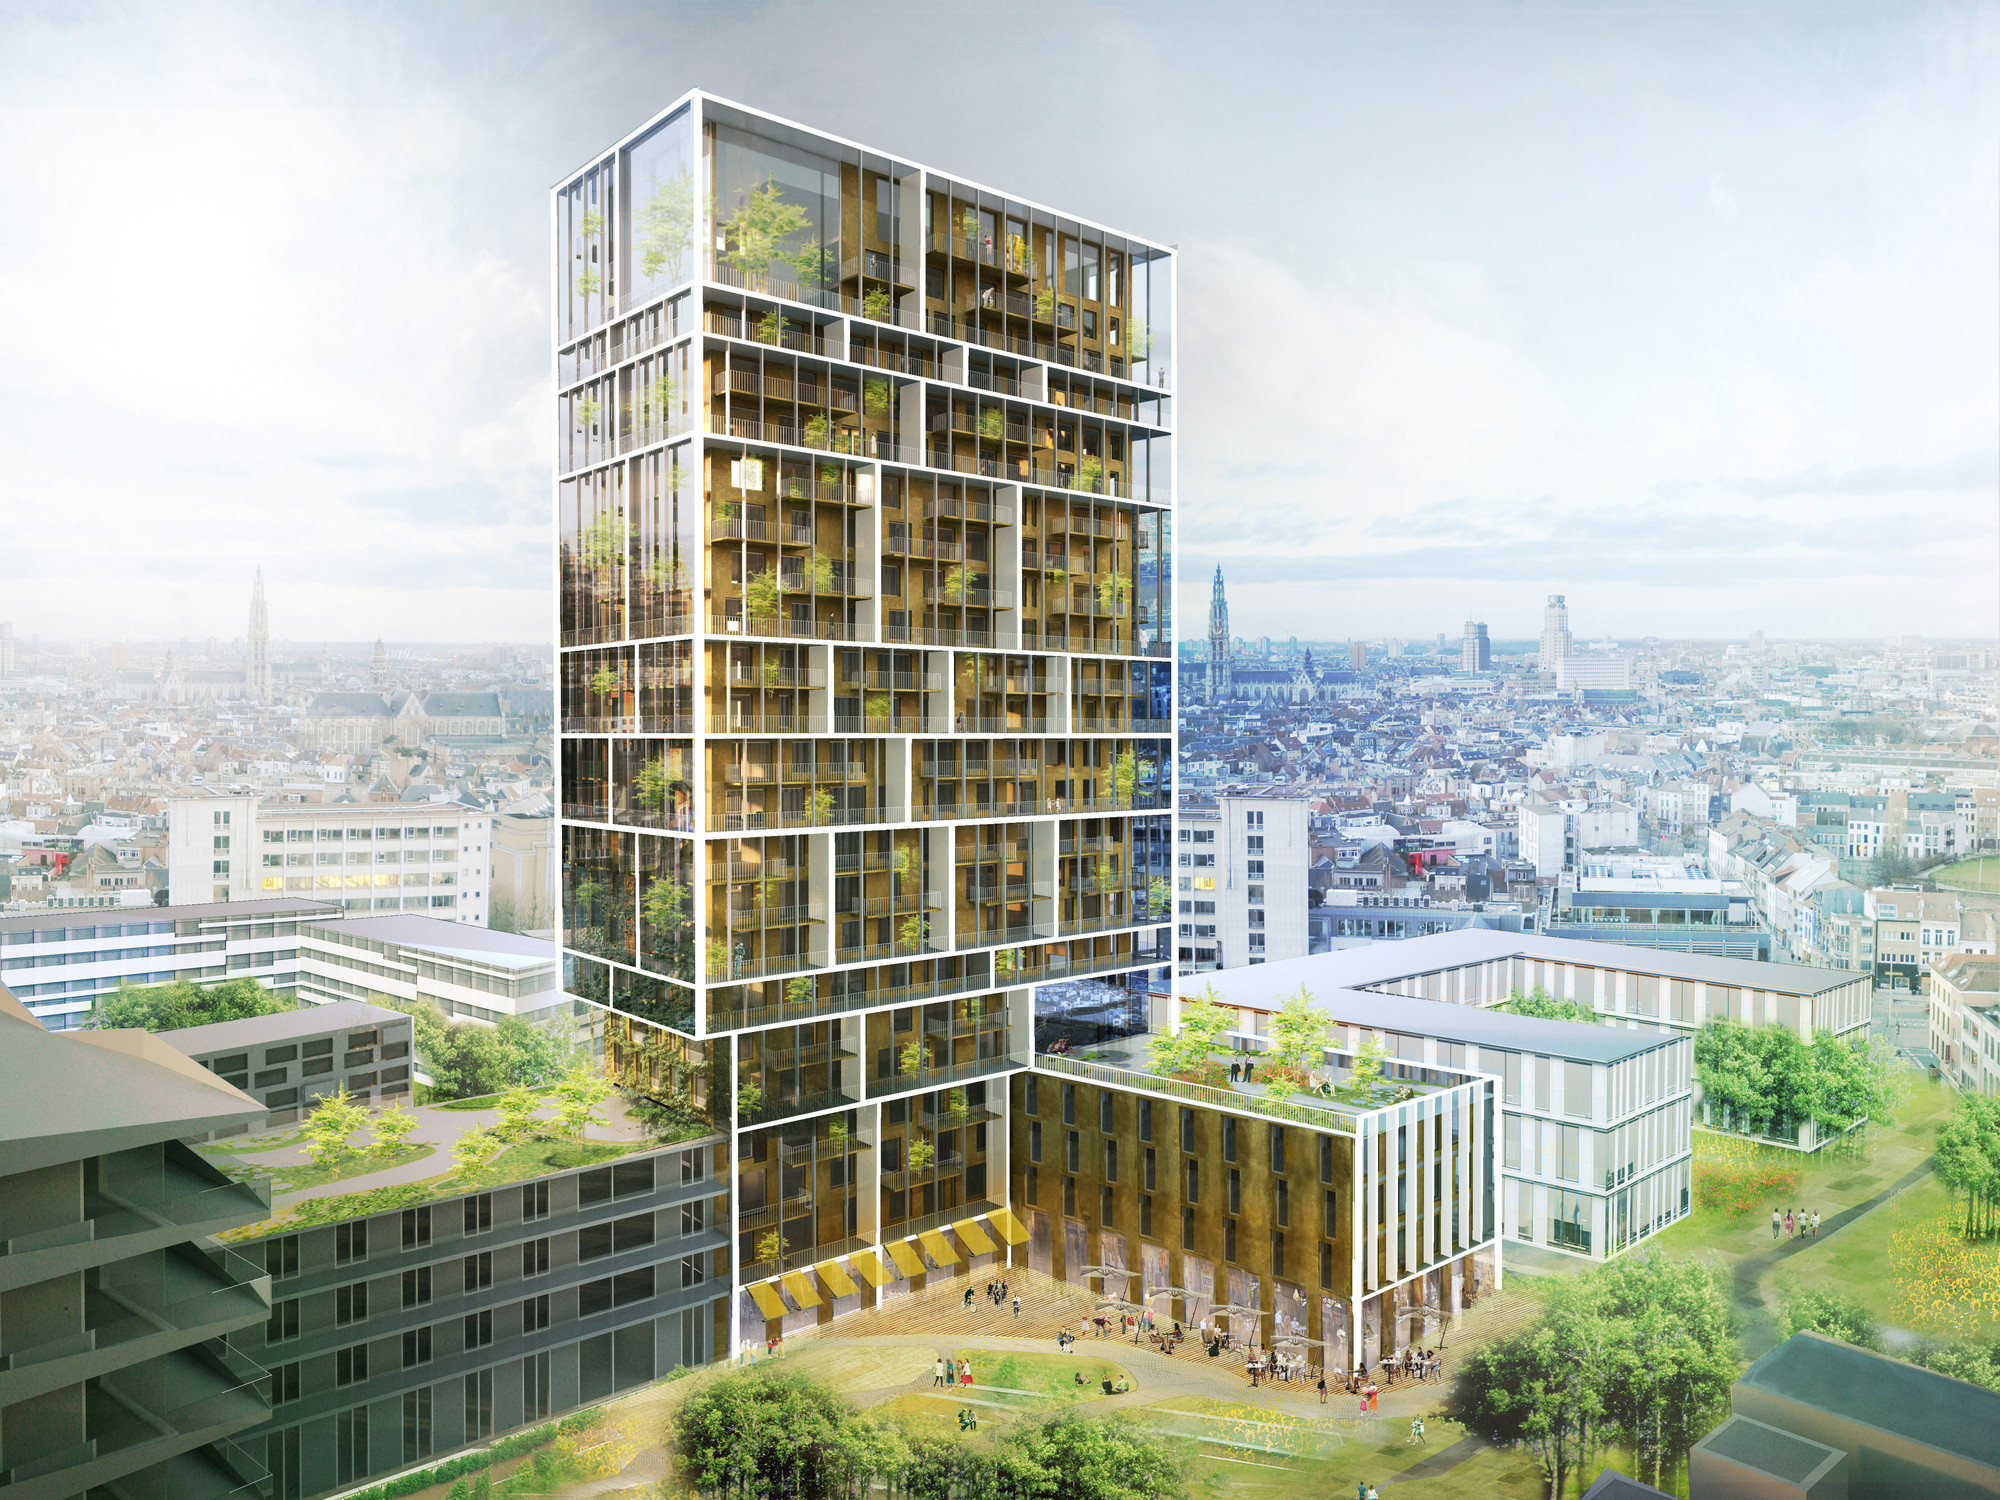 C f m ller chosen to design antwerp residential tower for Residential remodeling